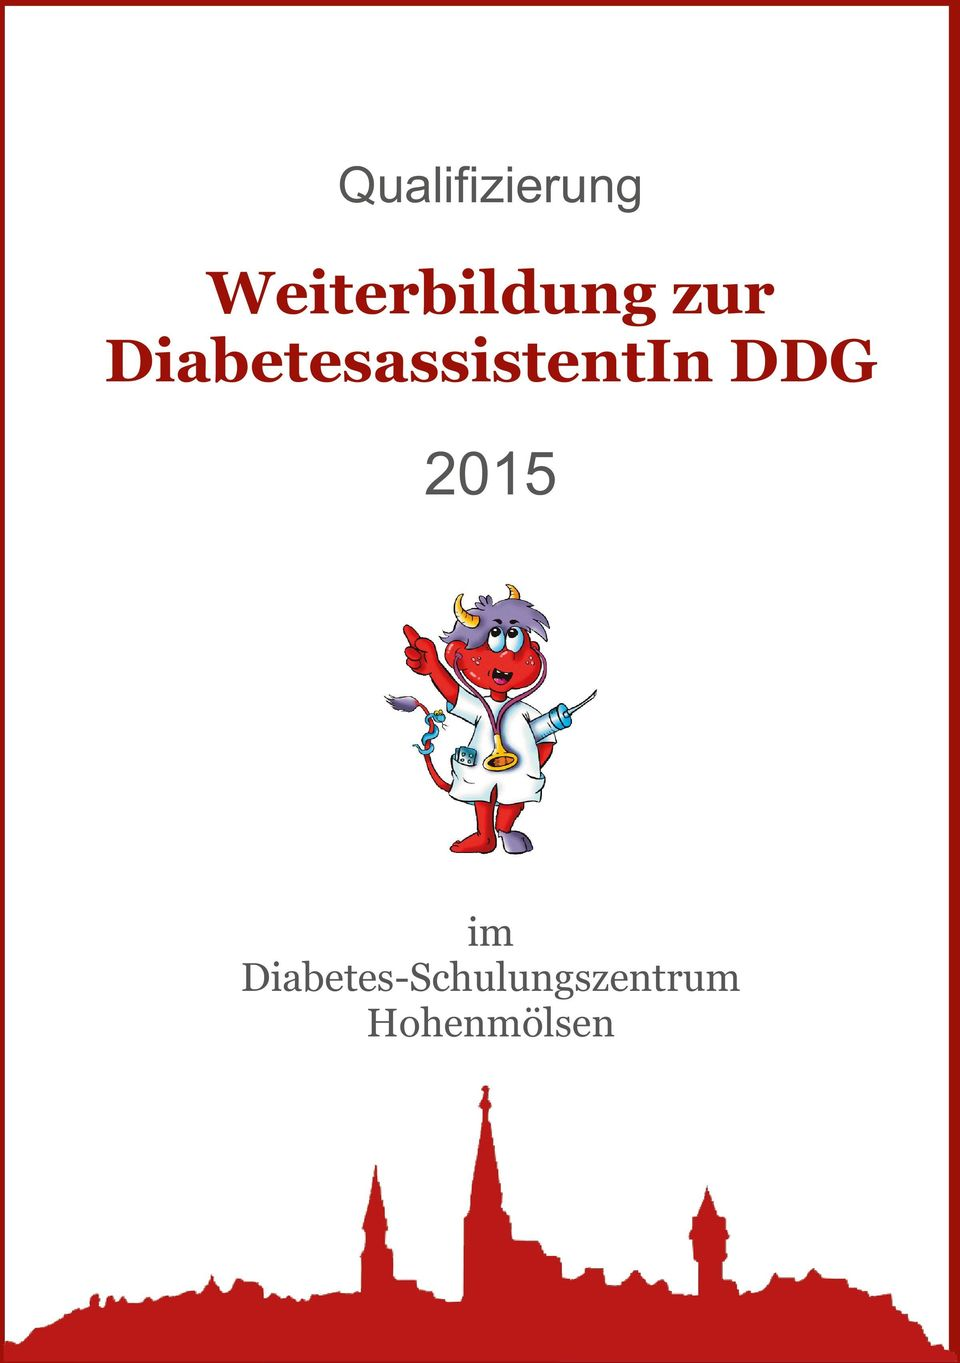 DiabetesassistentIn DDG 1